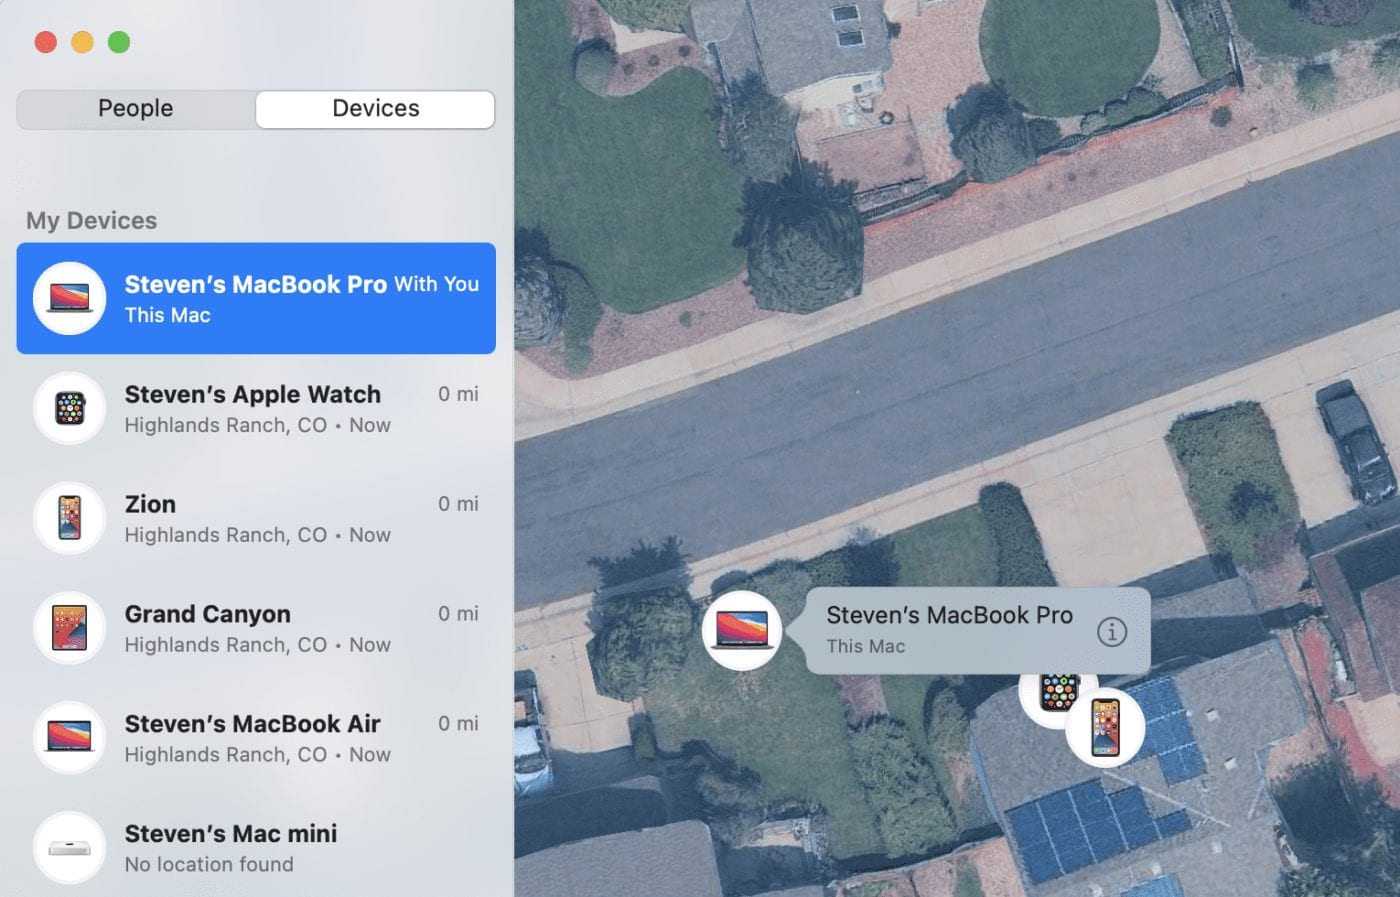 The  map view with icons indicating different devices